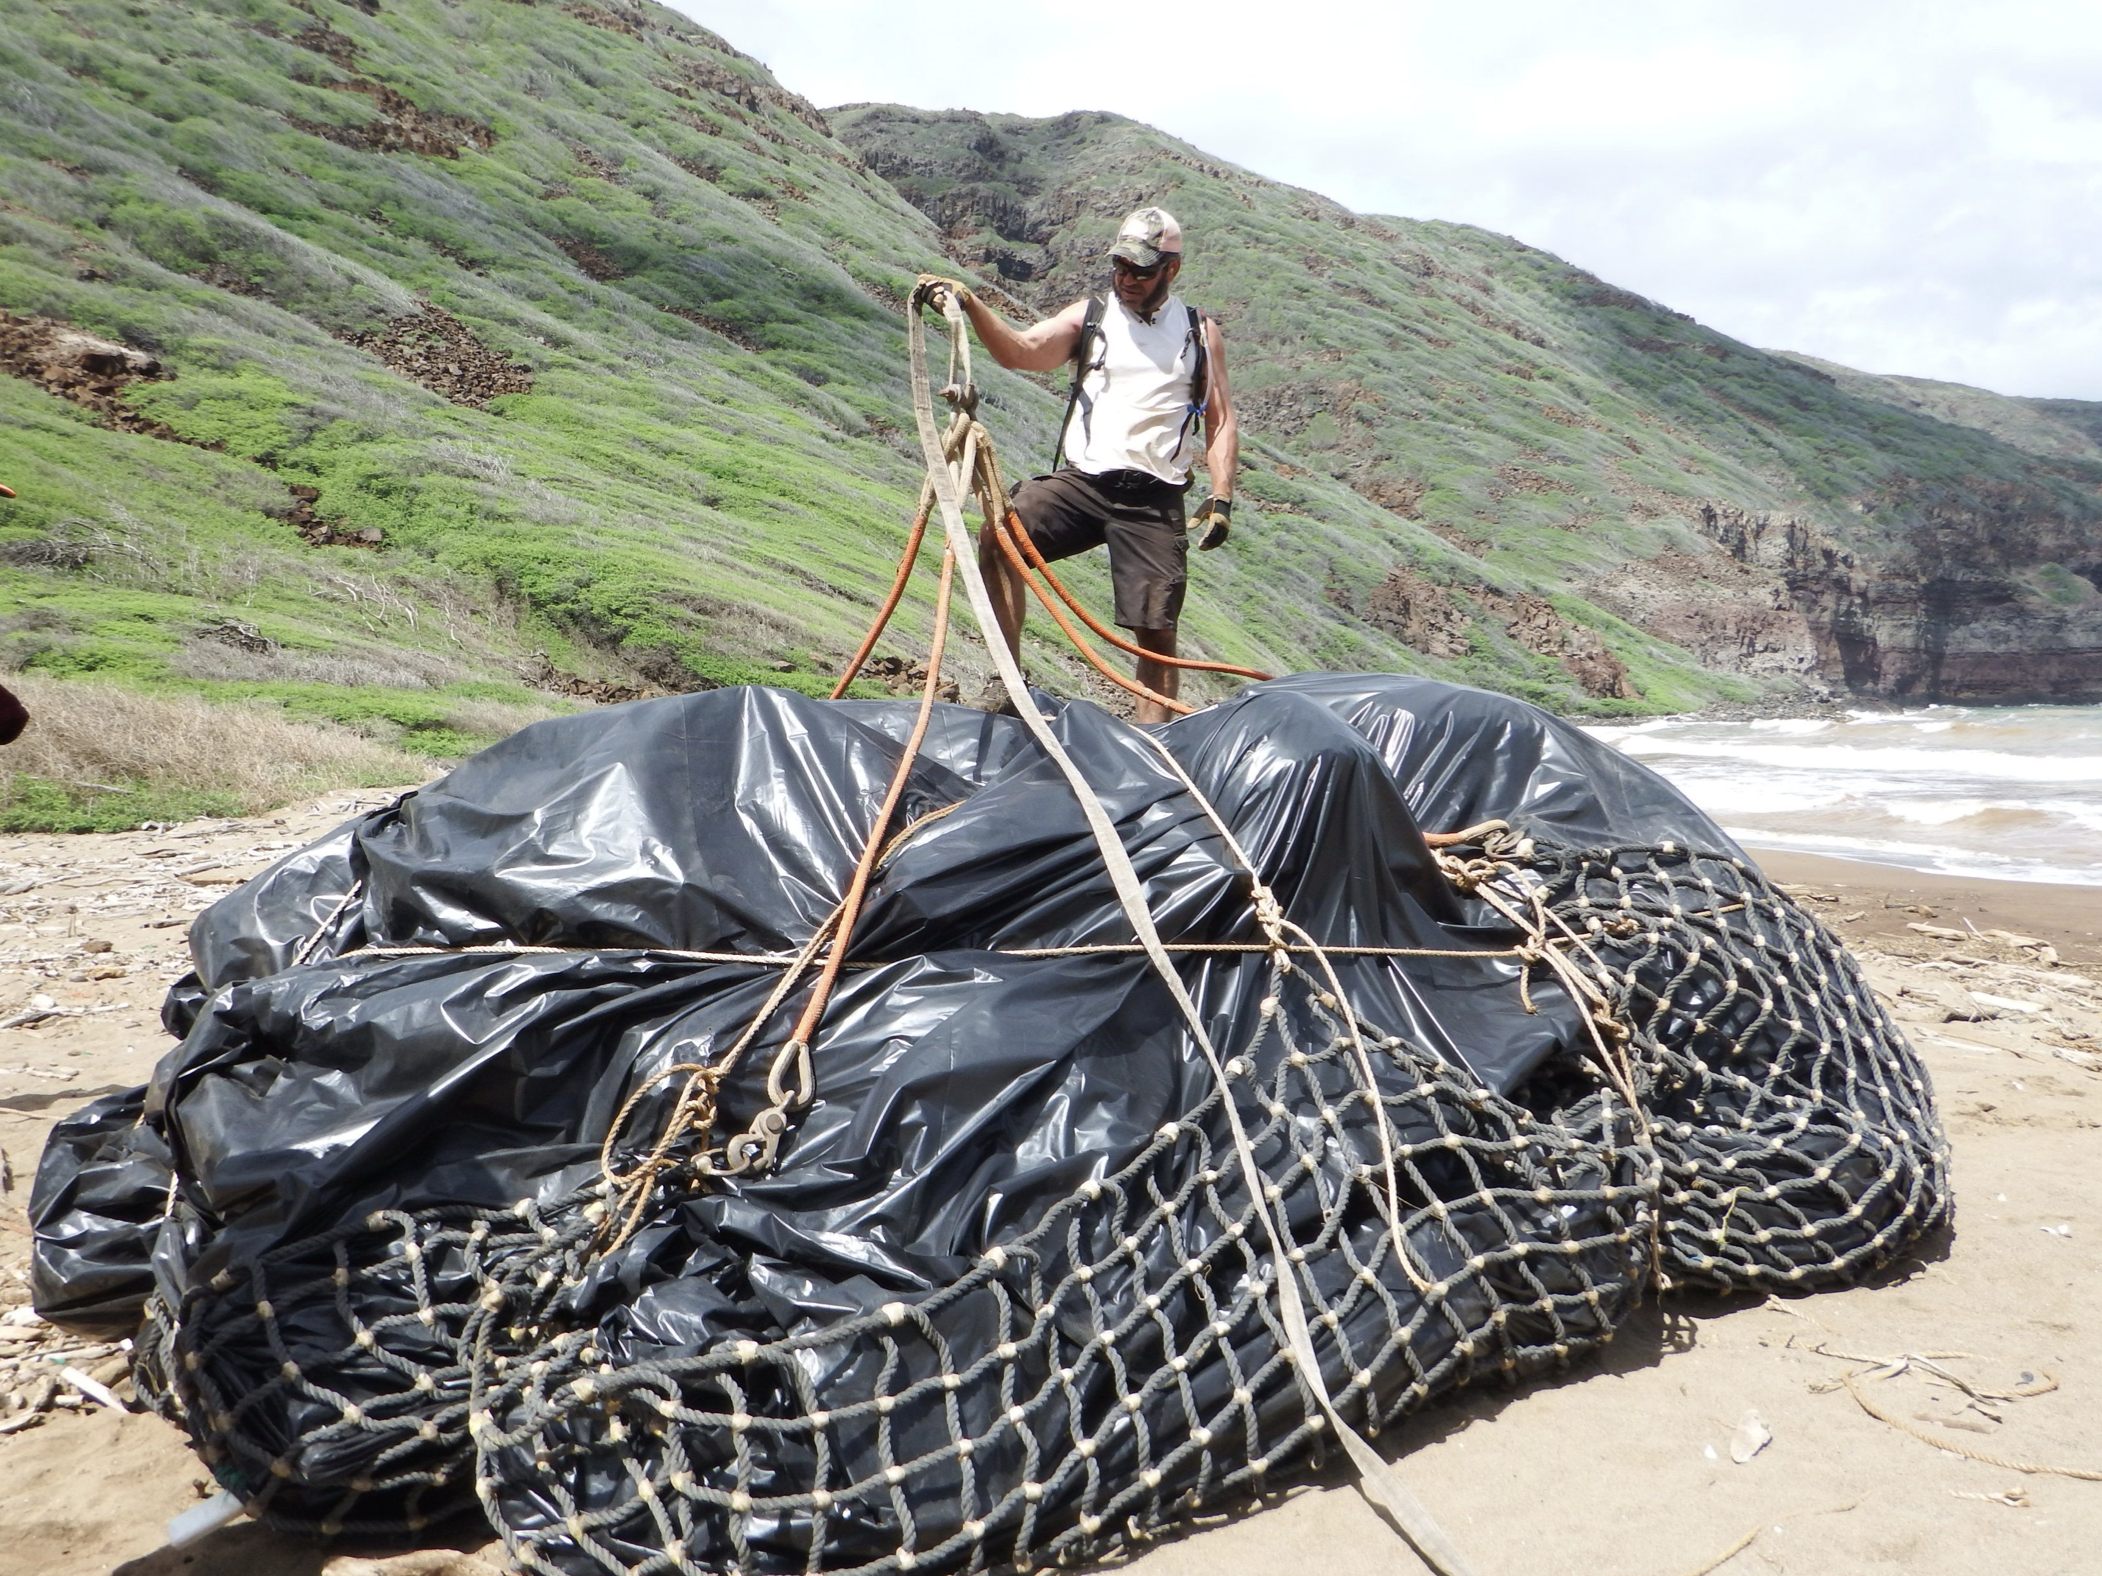 New Hotline Available to Report Marine Debris and Derelict Fishing Gear